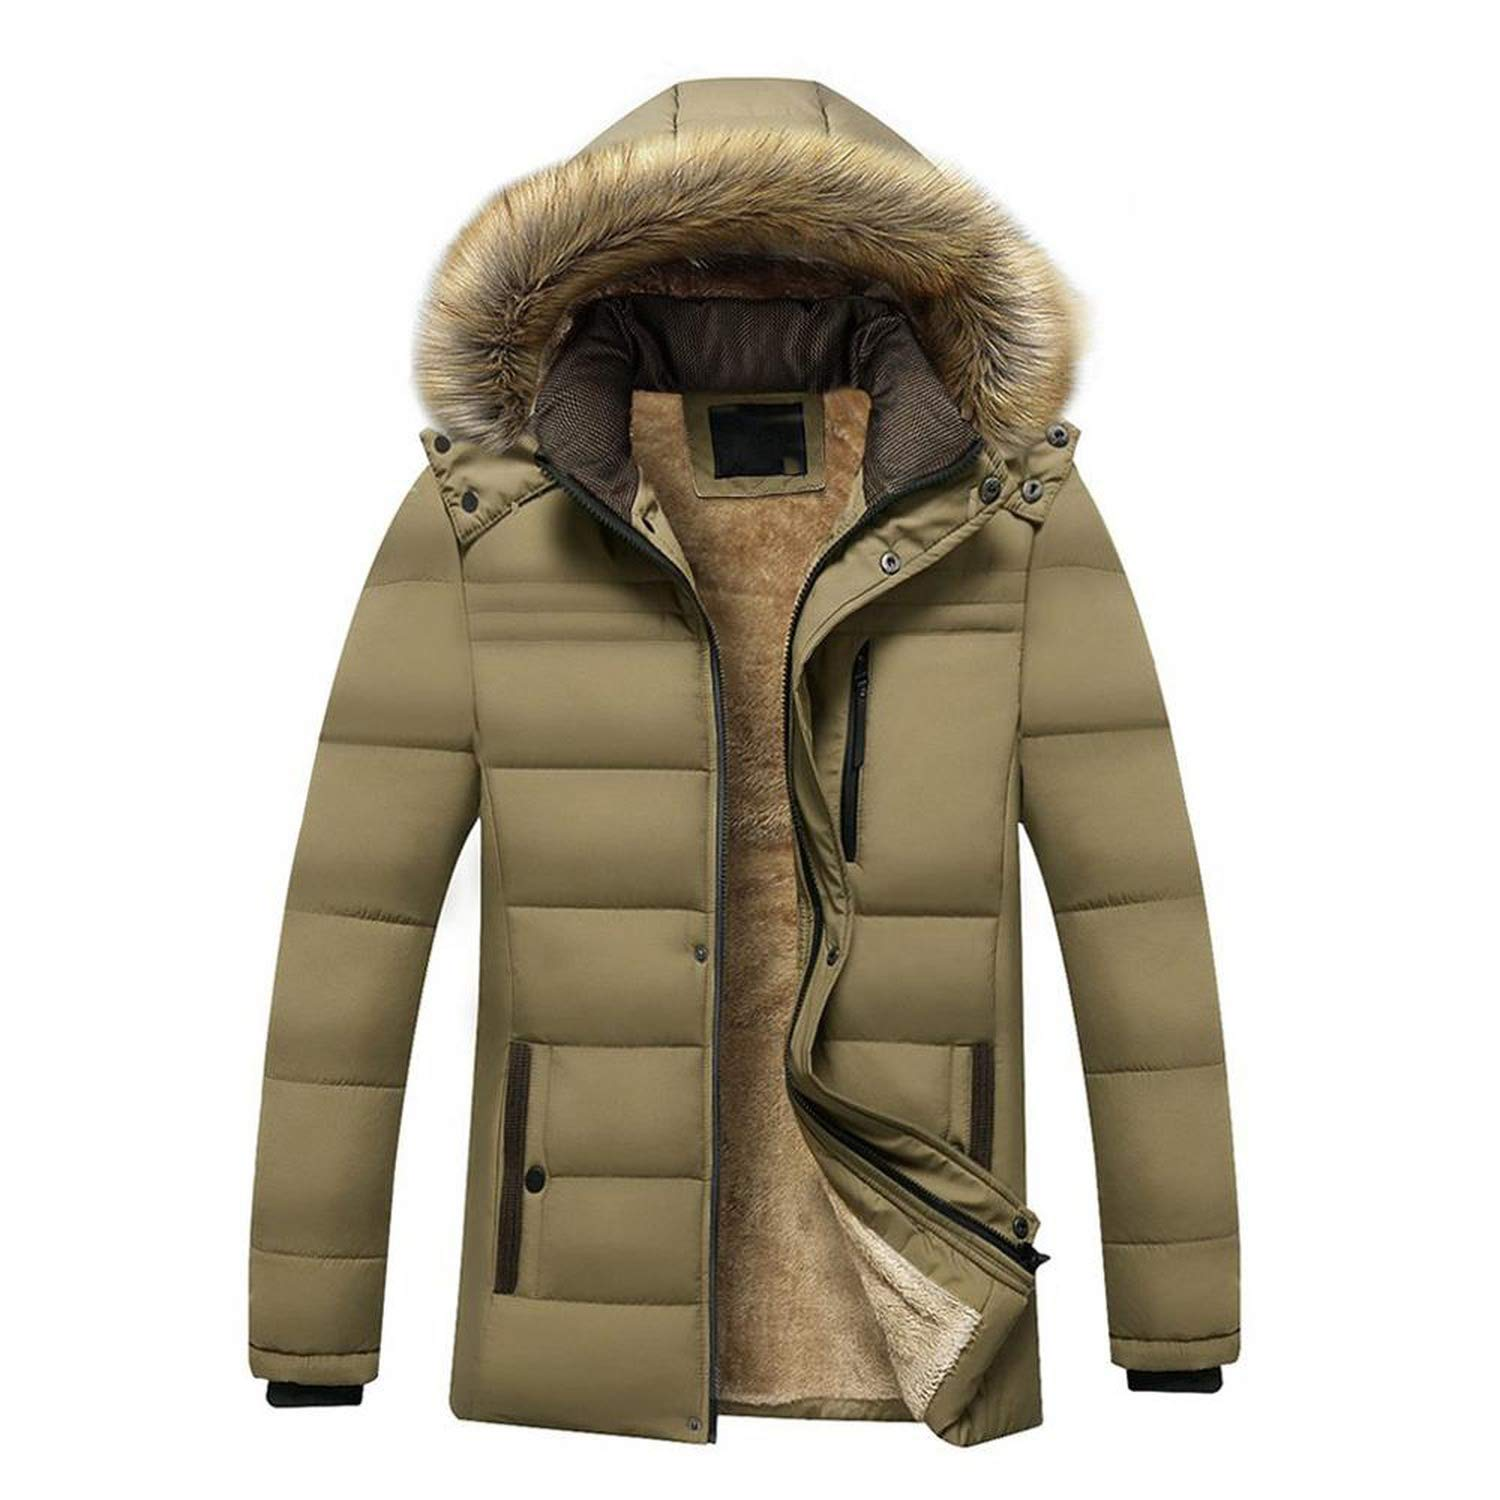 Amazon.com: Winter Casual Hoodie Thickened Cashmere Cotton Padded Jacket Coat Waterproof Windproof: Clothing